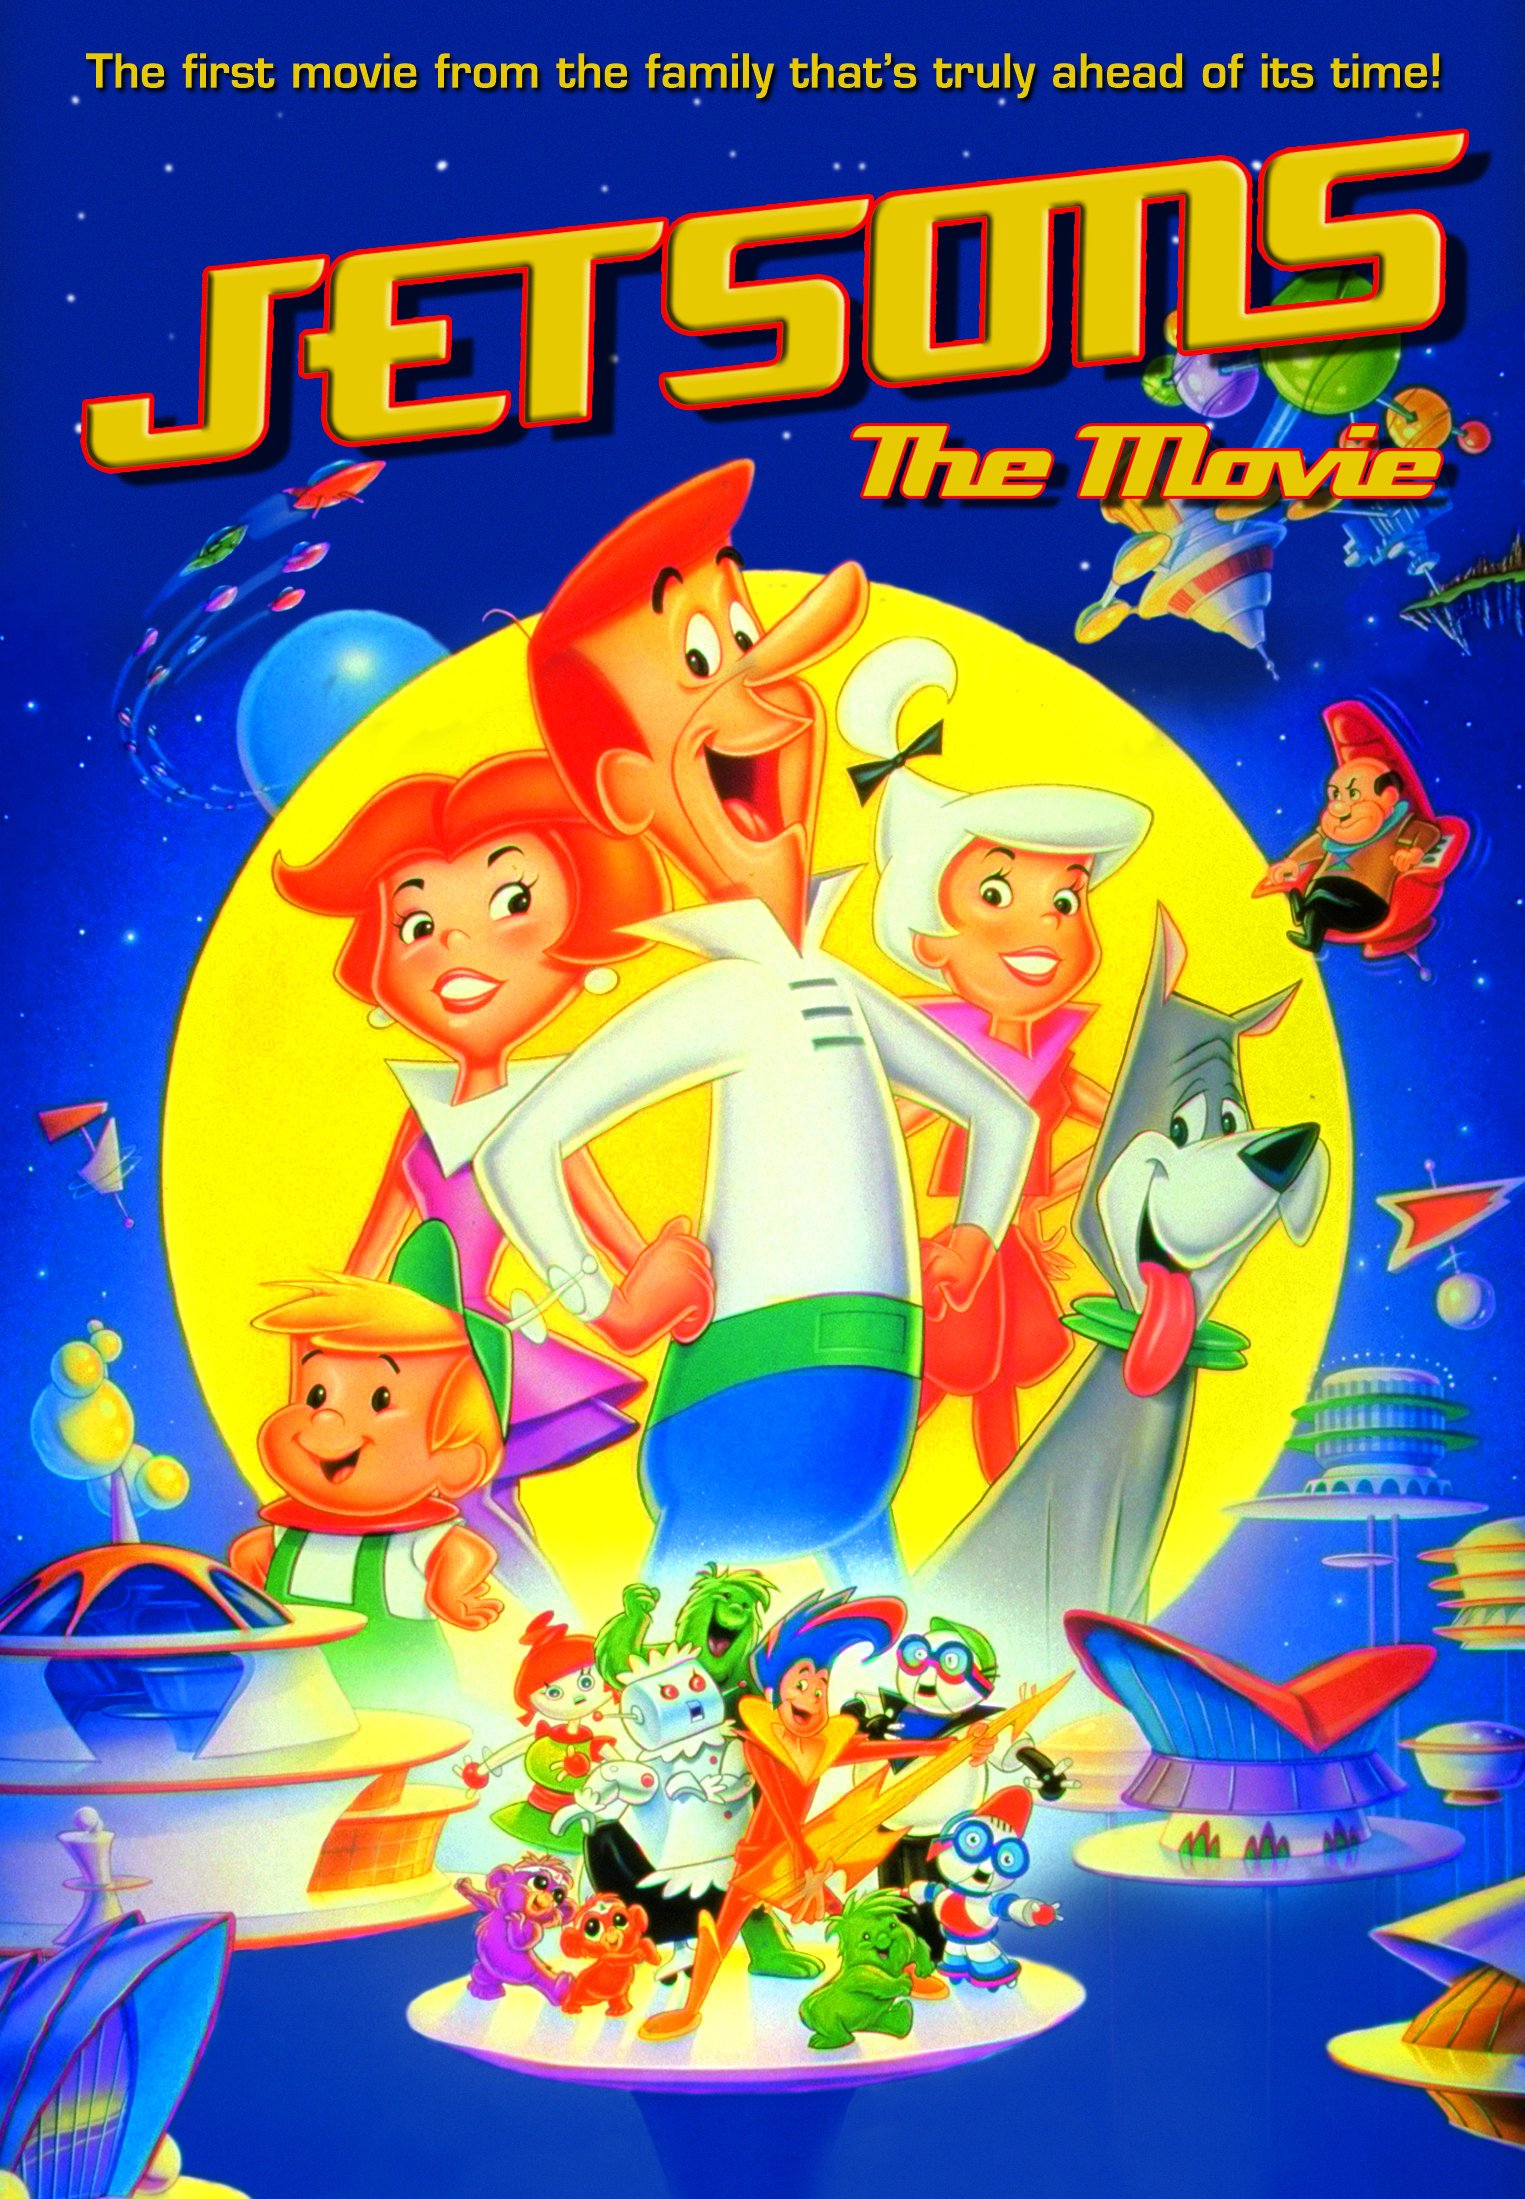 Amazon.com: Watch Jetsons: The Movie | Prime Video